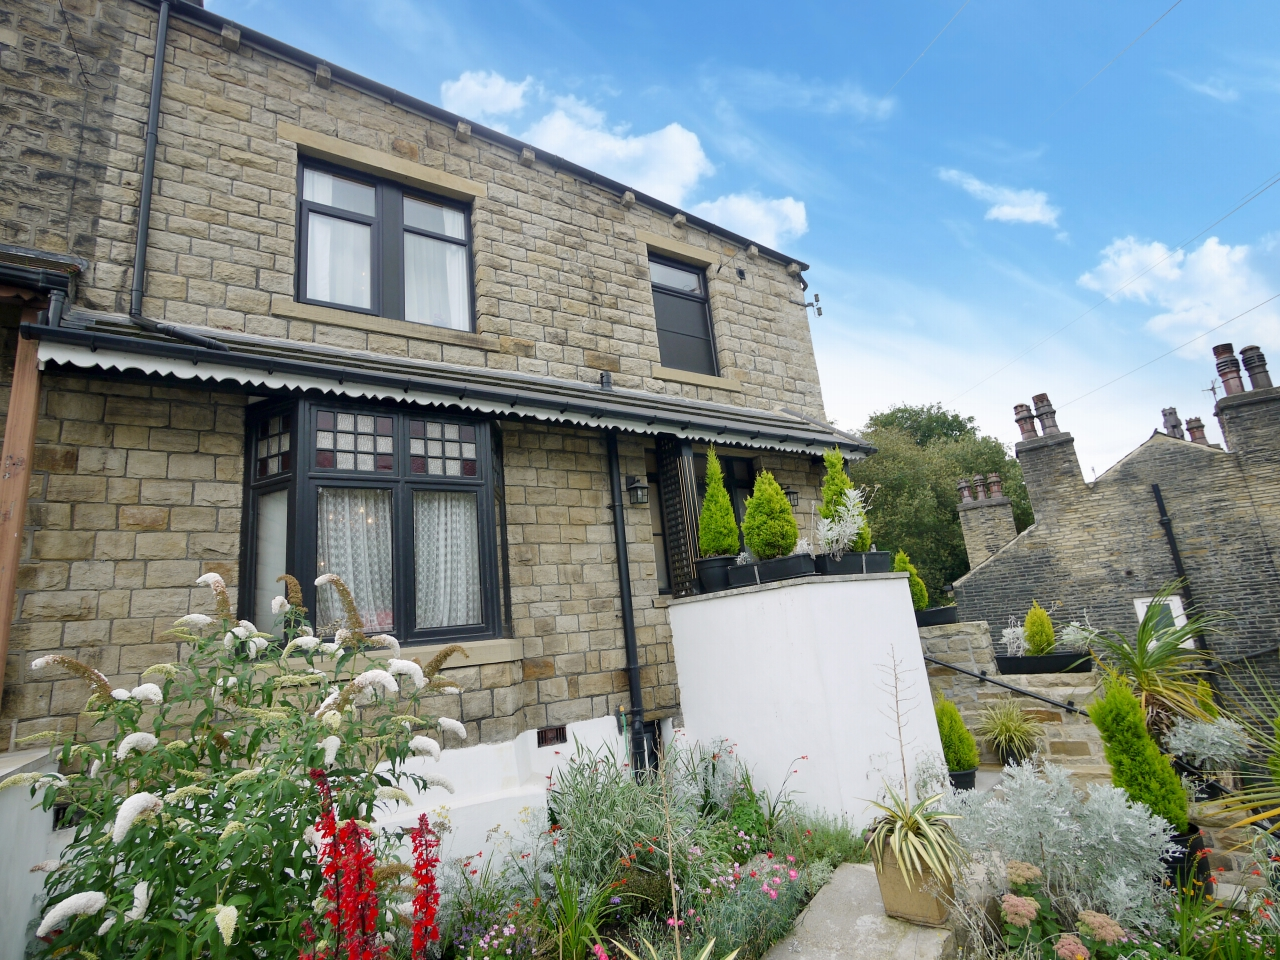 3 bedroom end terraced house SSTC in Halifax - Photograph 1.